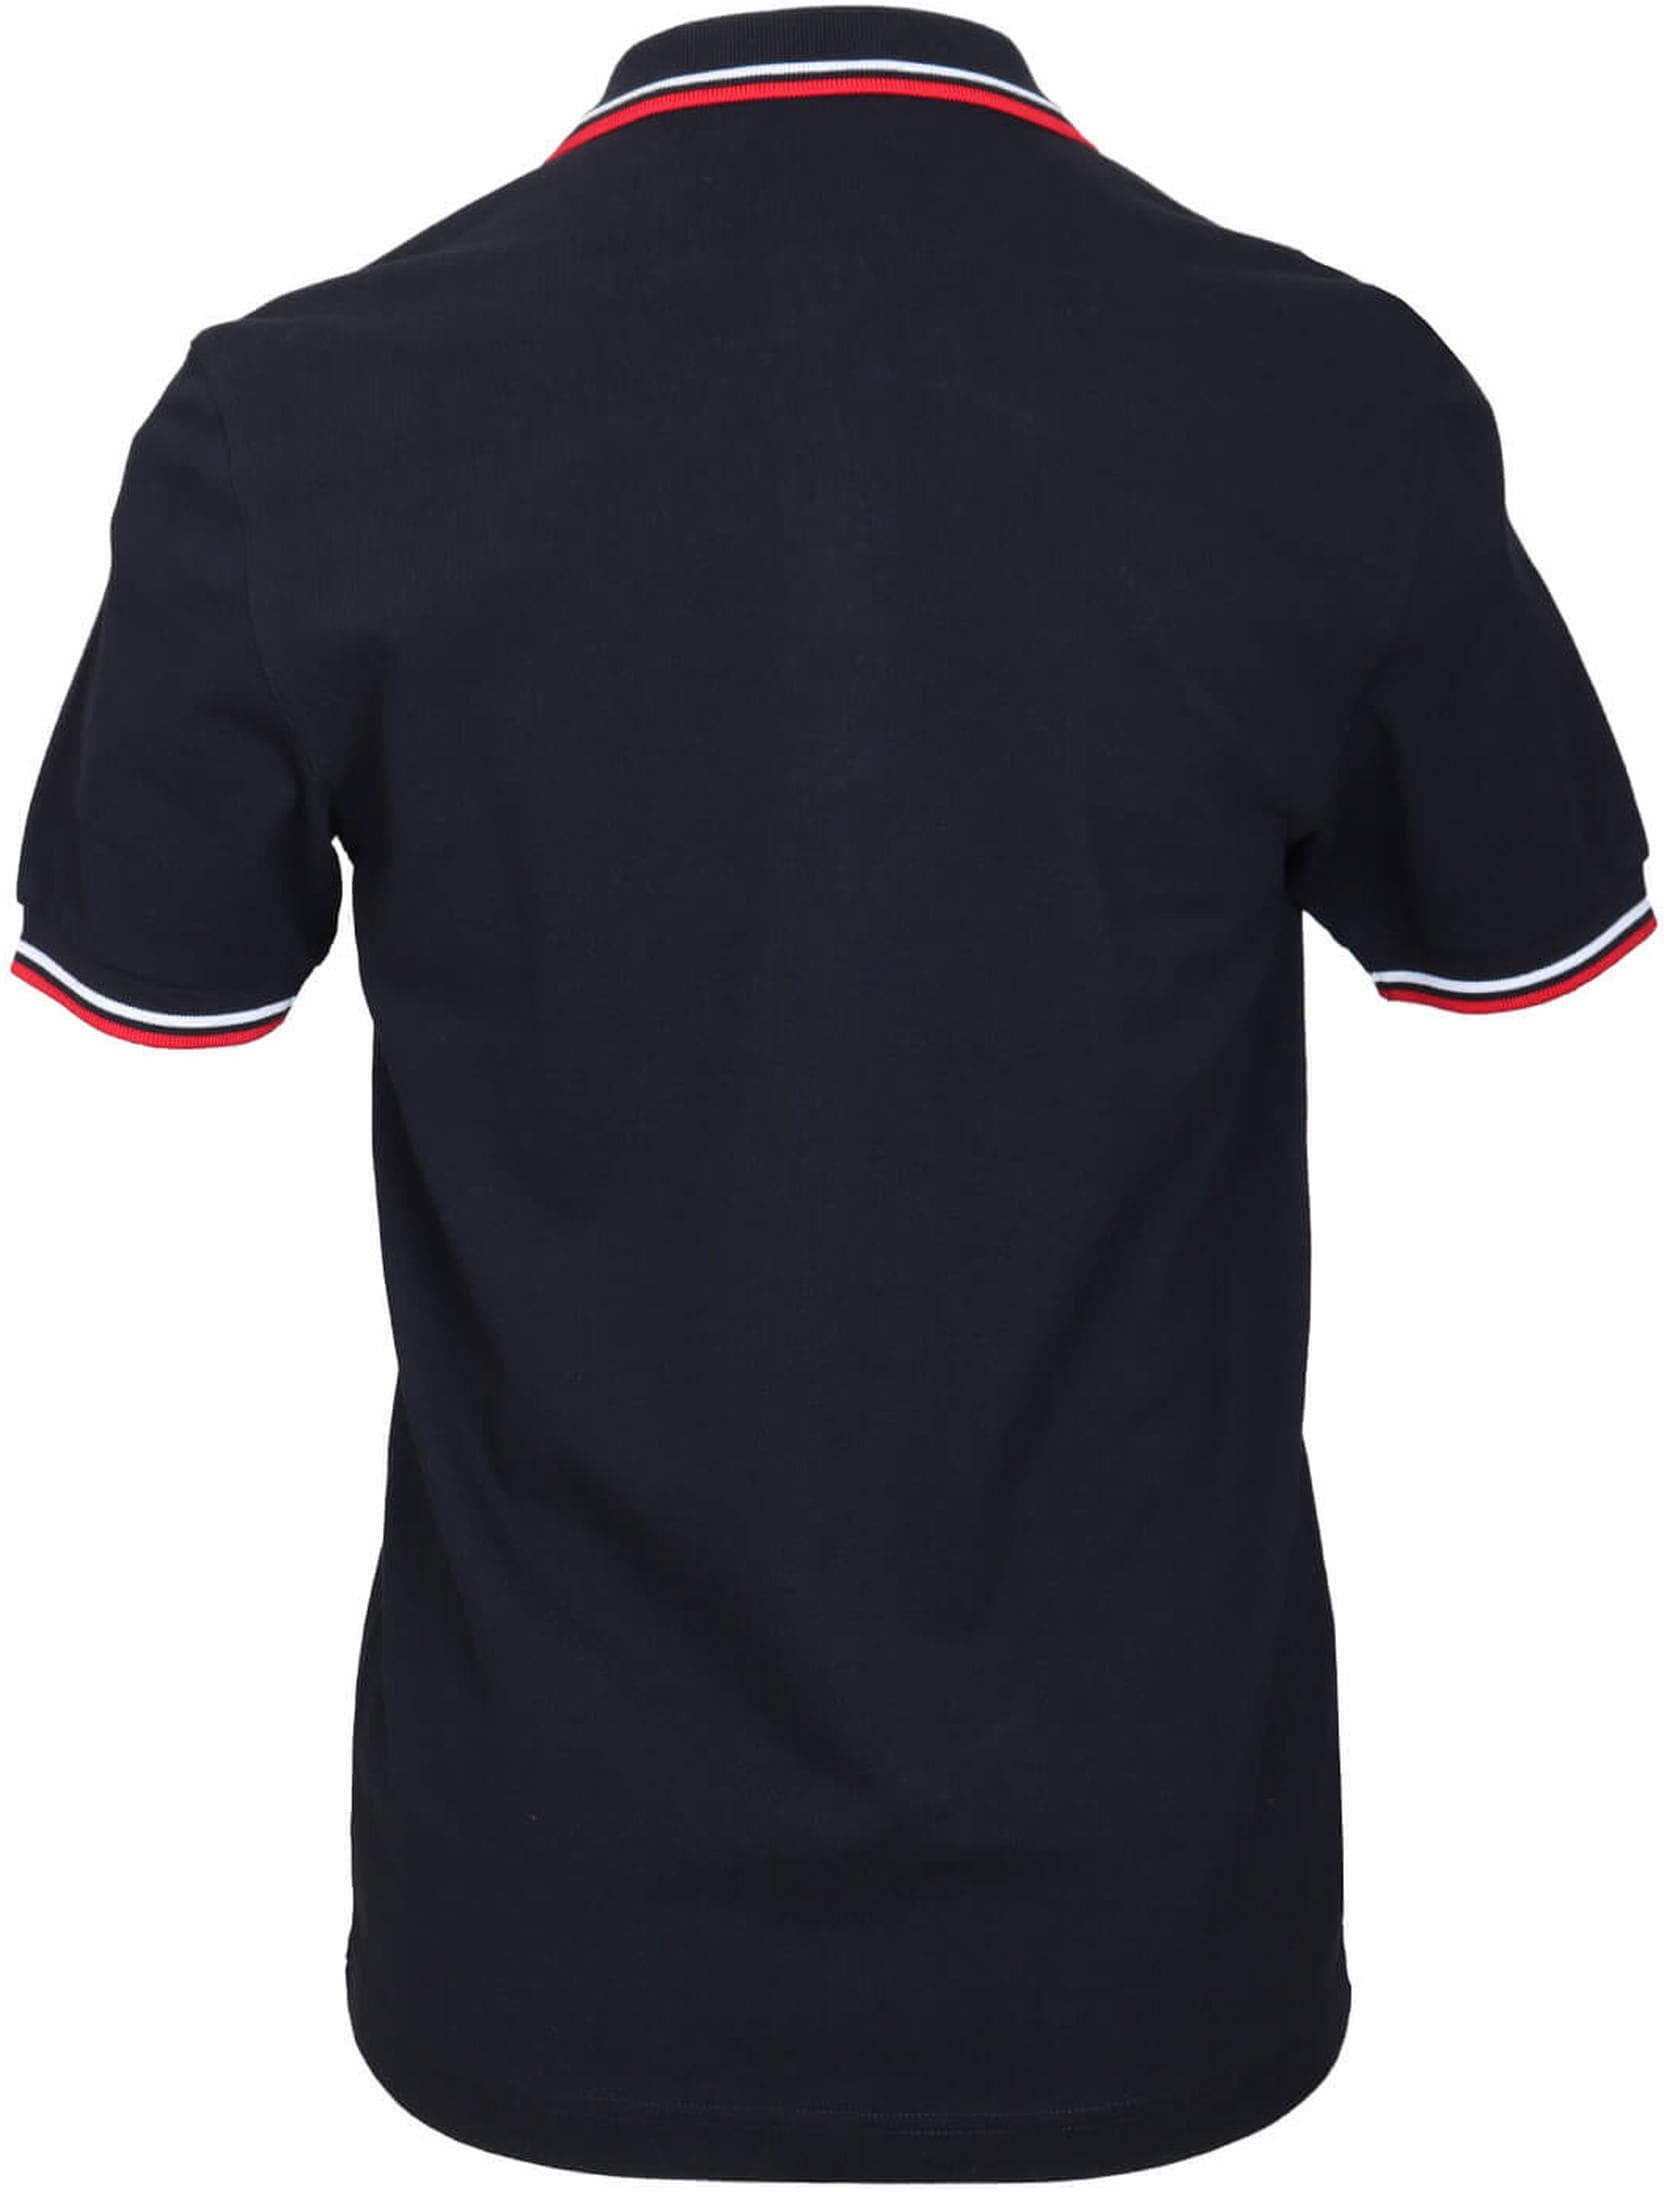 Fred Perry Polo Navy White Red foto 1